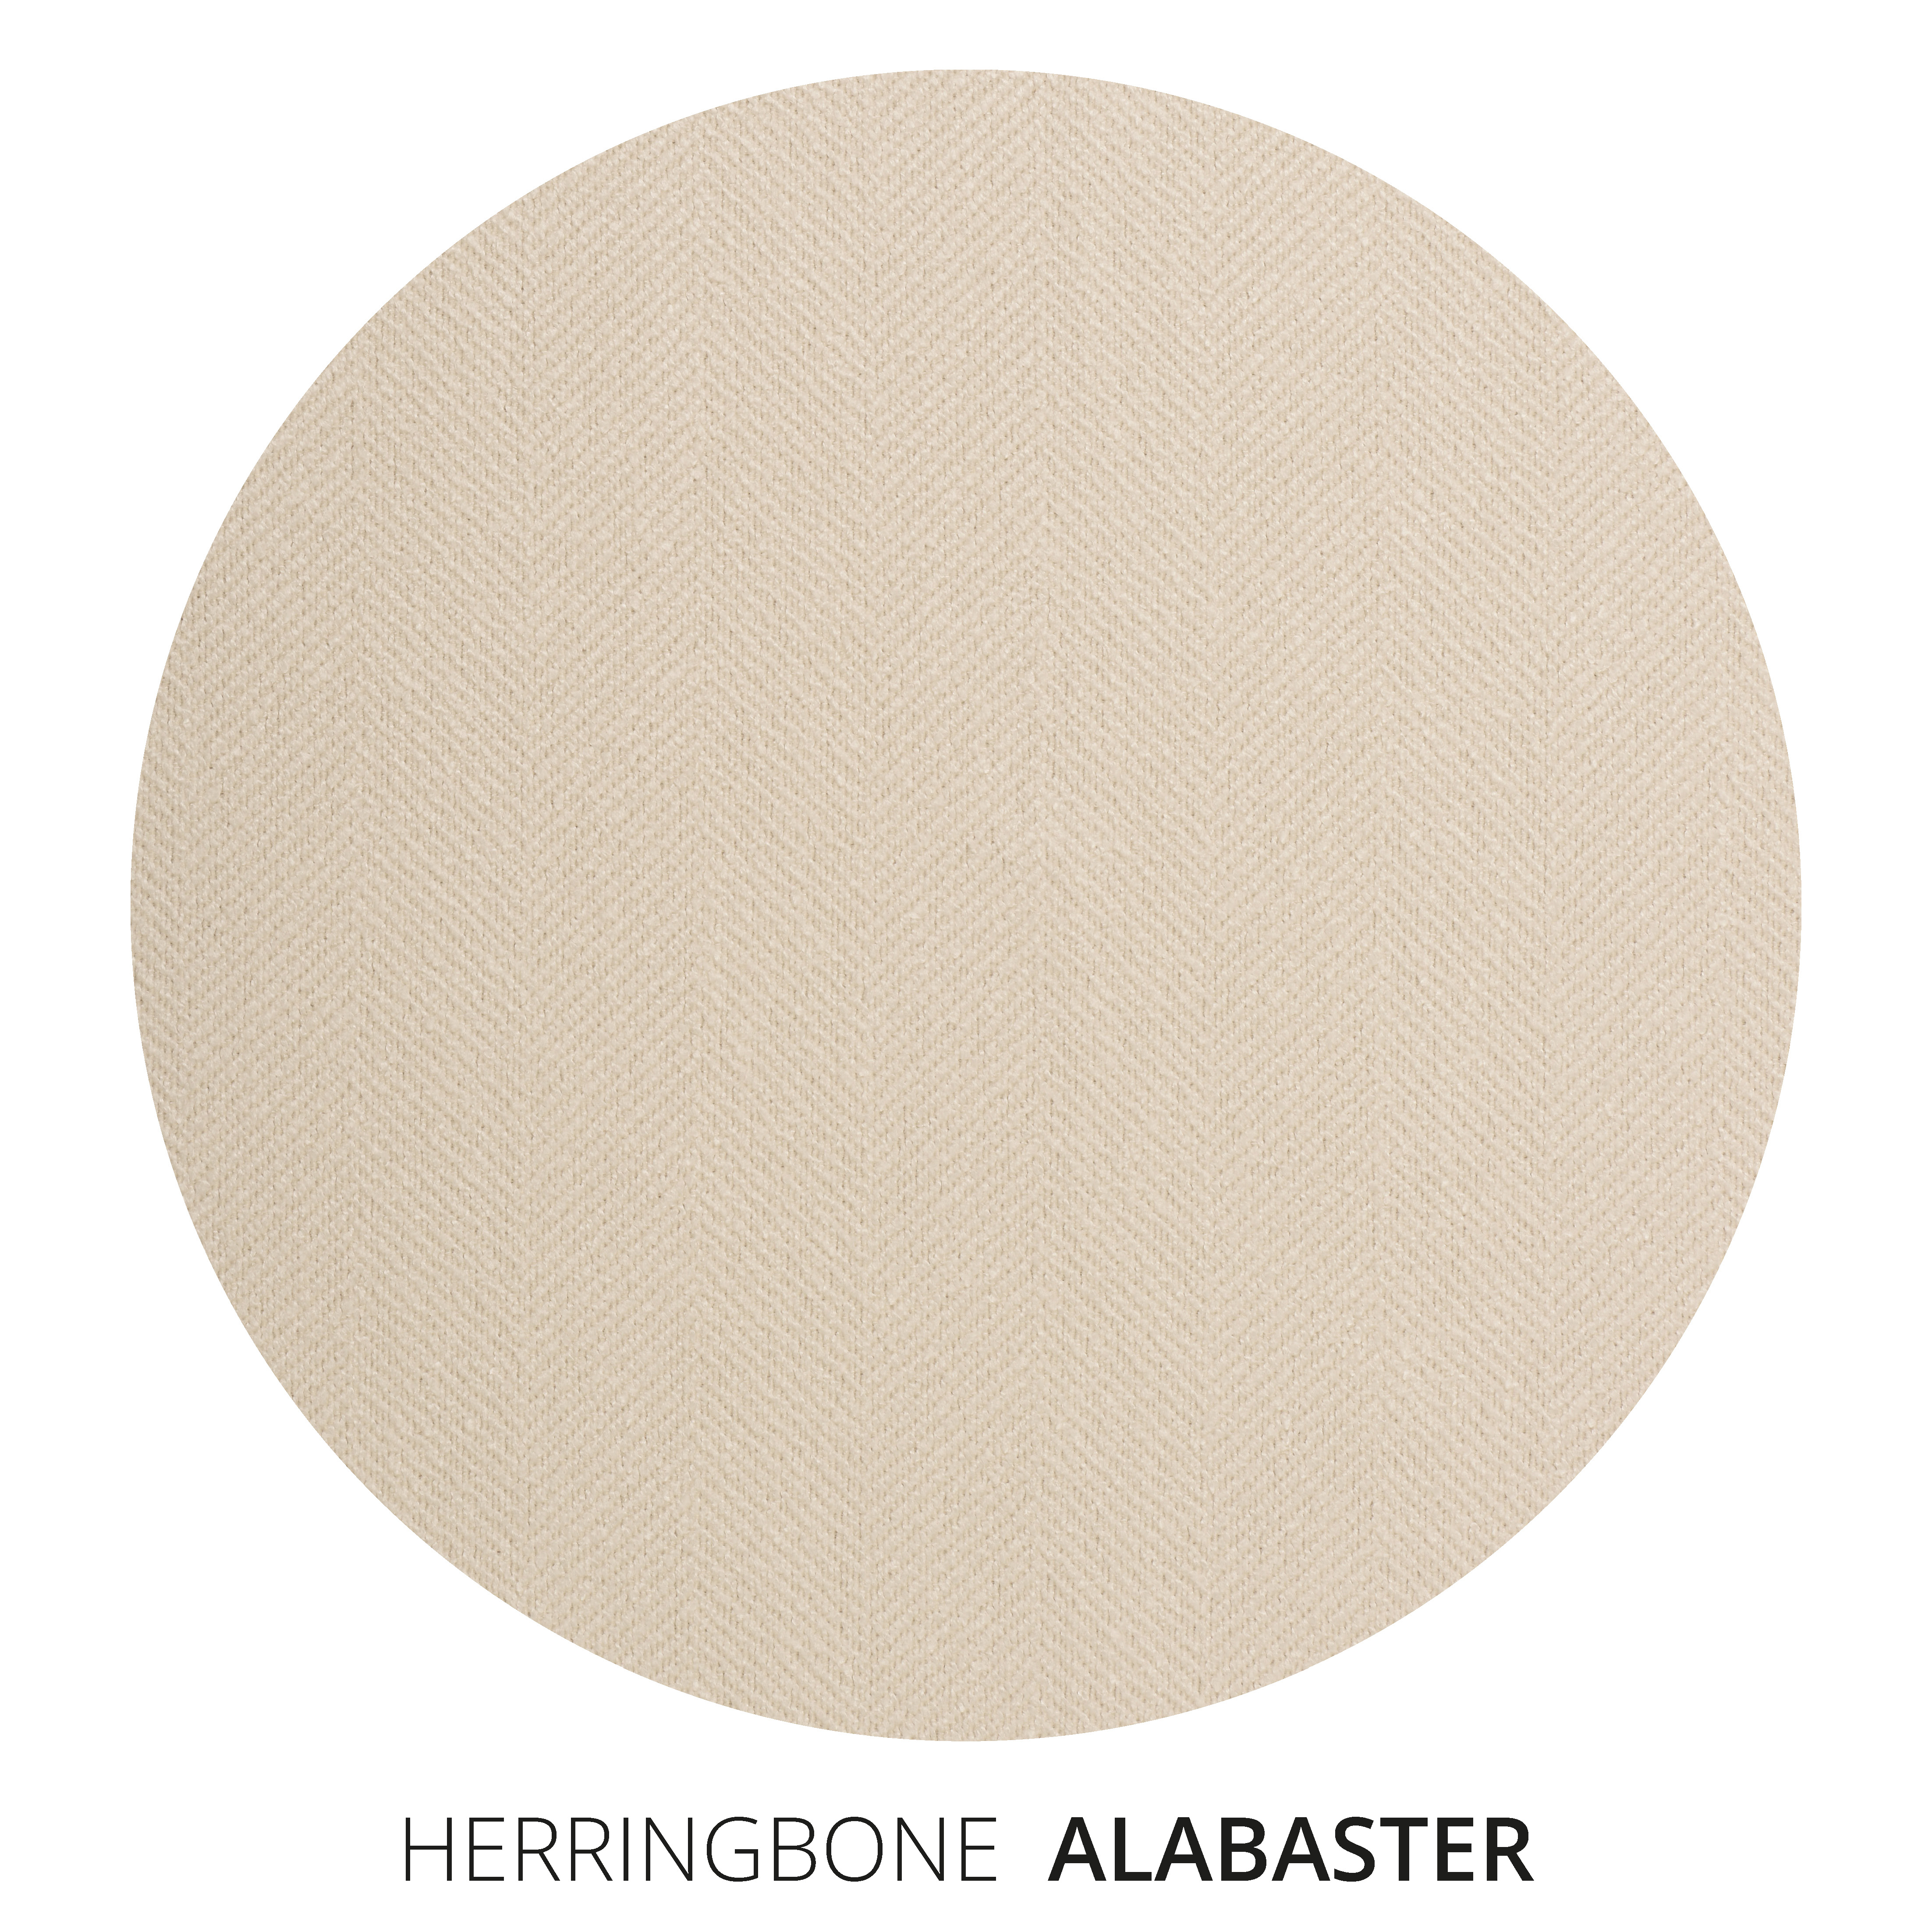 Alabaster Herringbone Swatch